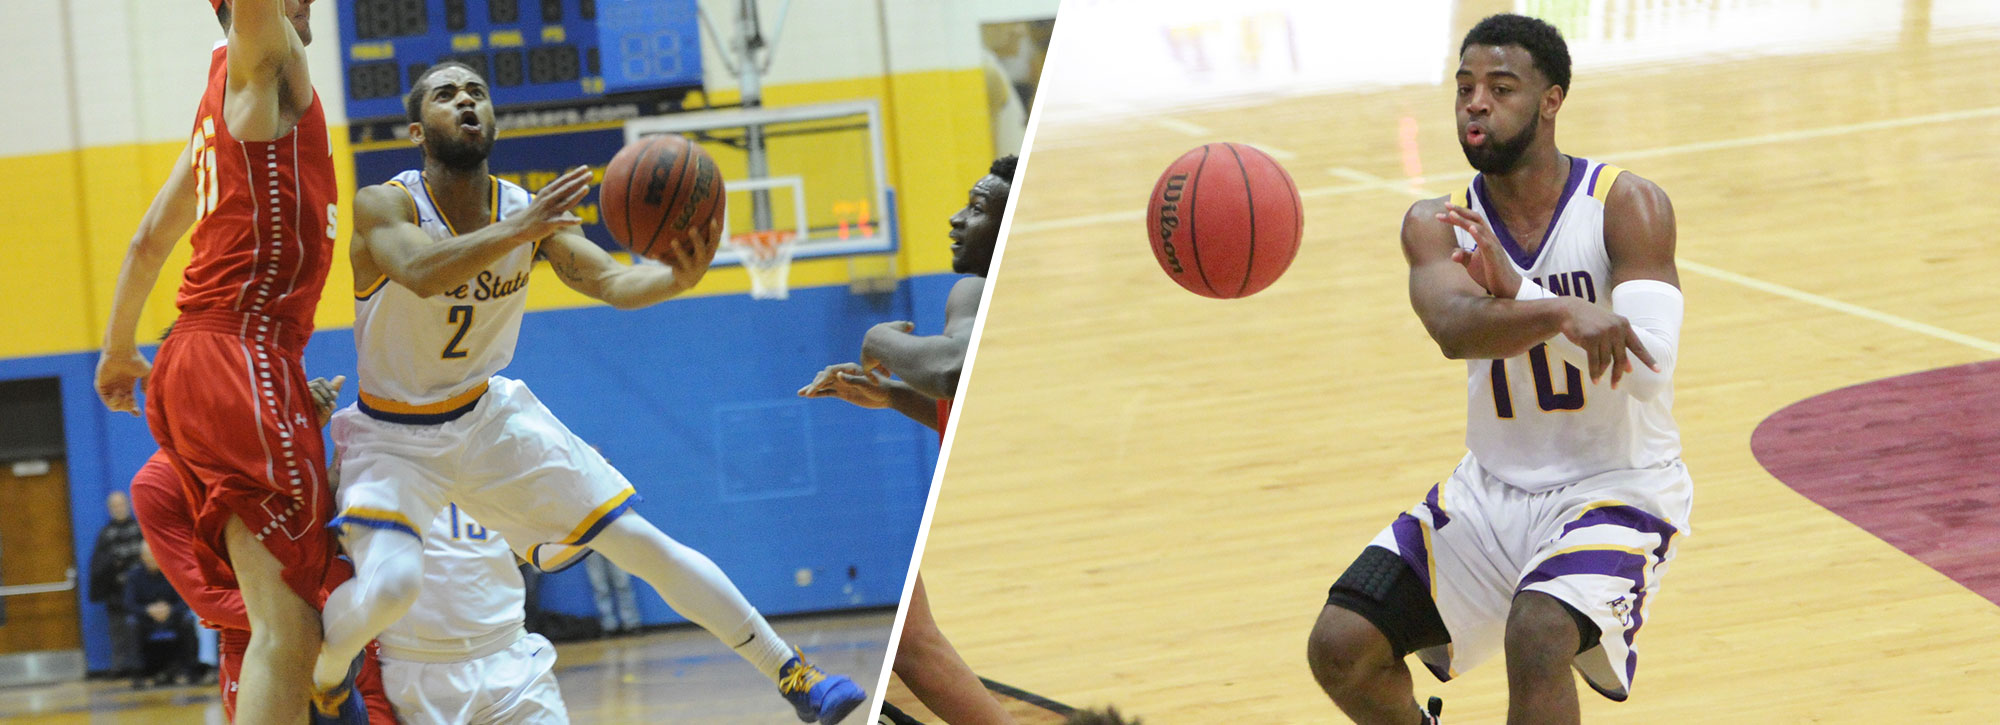 Lake State's Williams, Ashland's Davis Capture GLIAC Player of the Week Honors